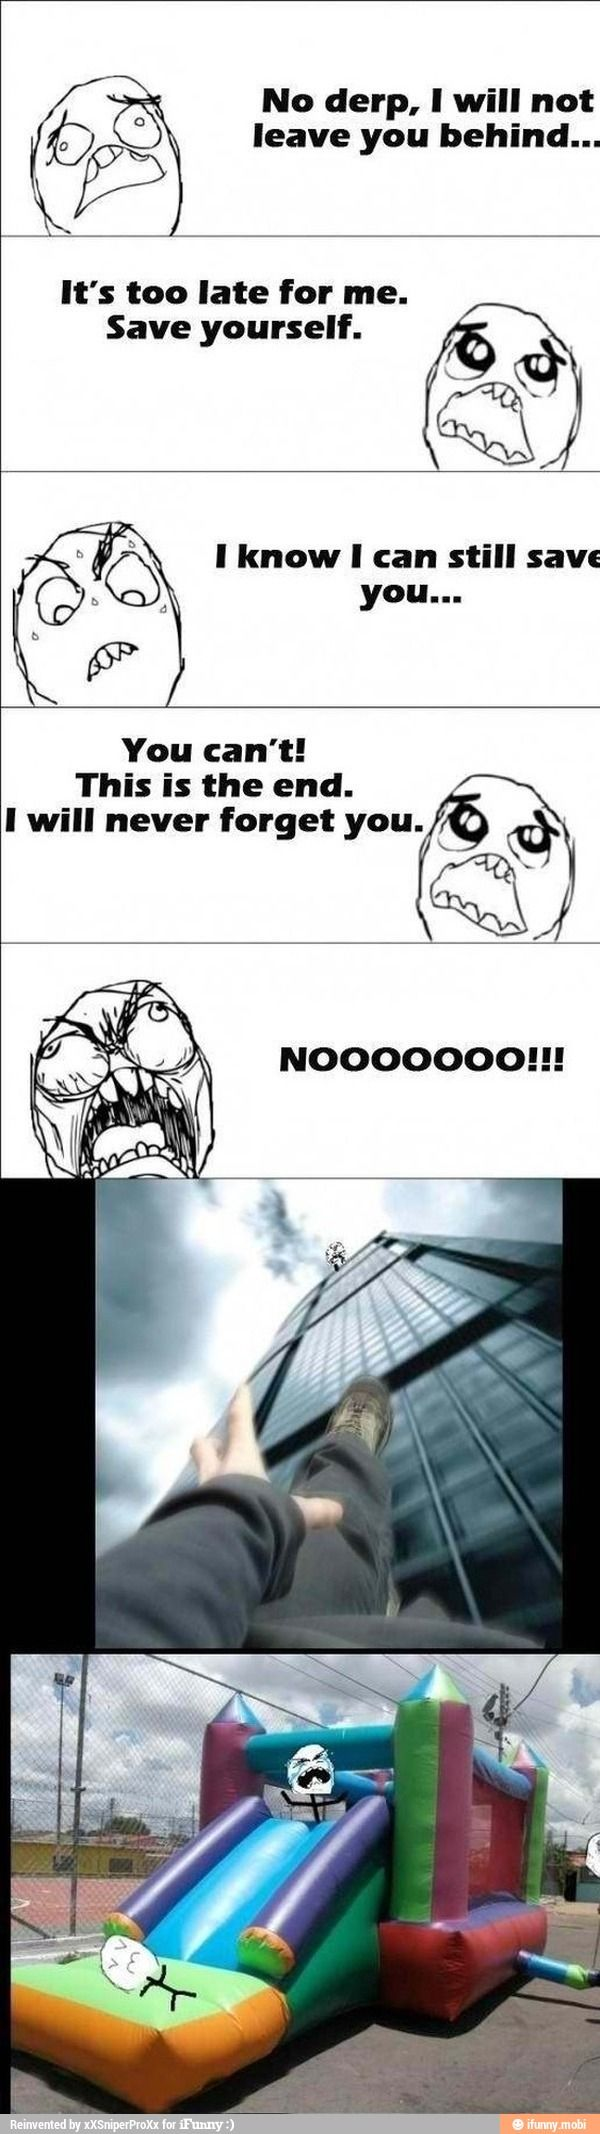 Lol! I always did this when I was a little kid and I still do it sometimes!